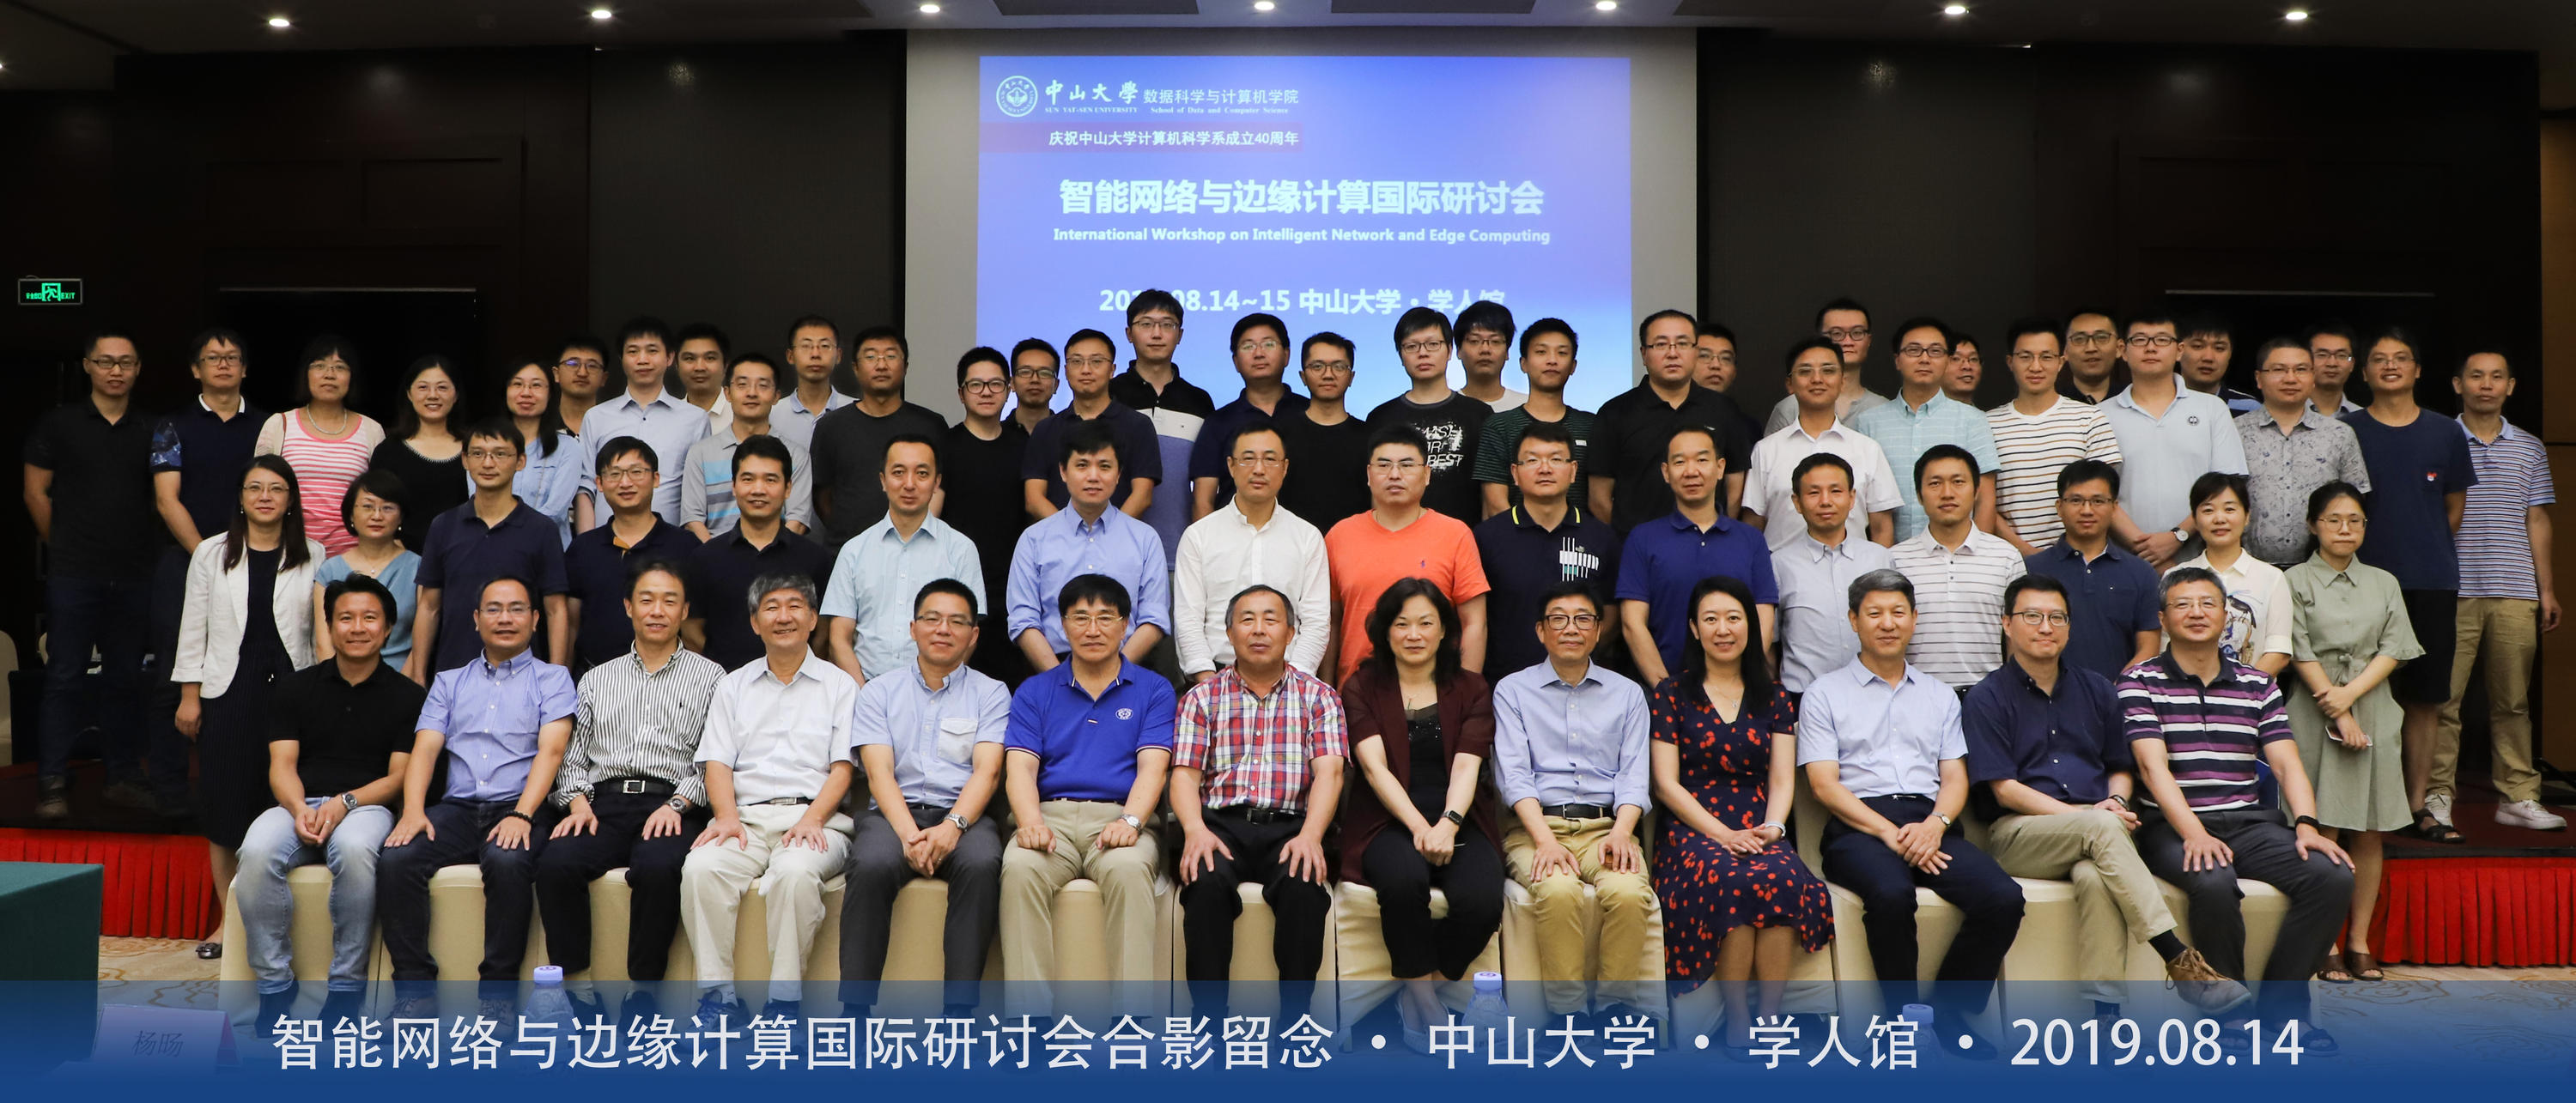 Prof. Shen and former BBCR members attended the SYSU Workshop on Intelligent Networks and Edge Computing